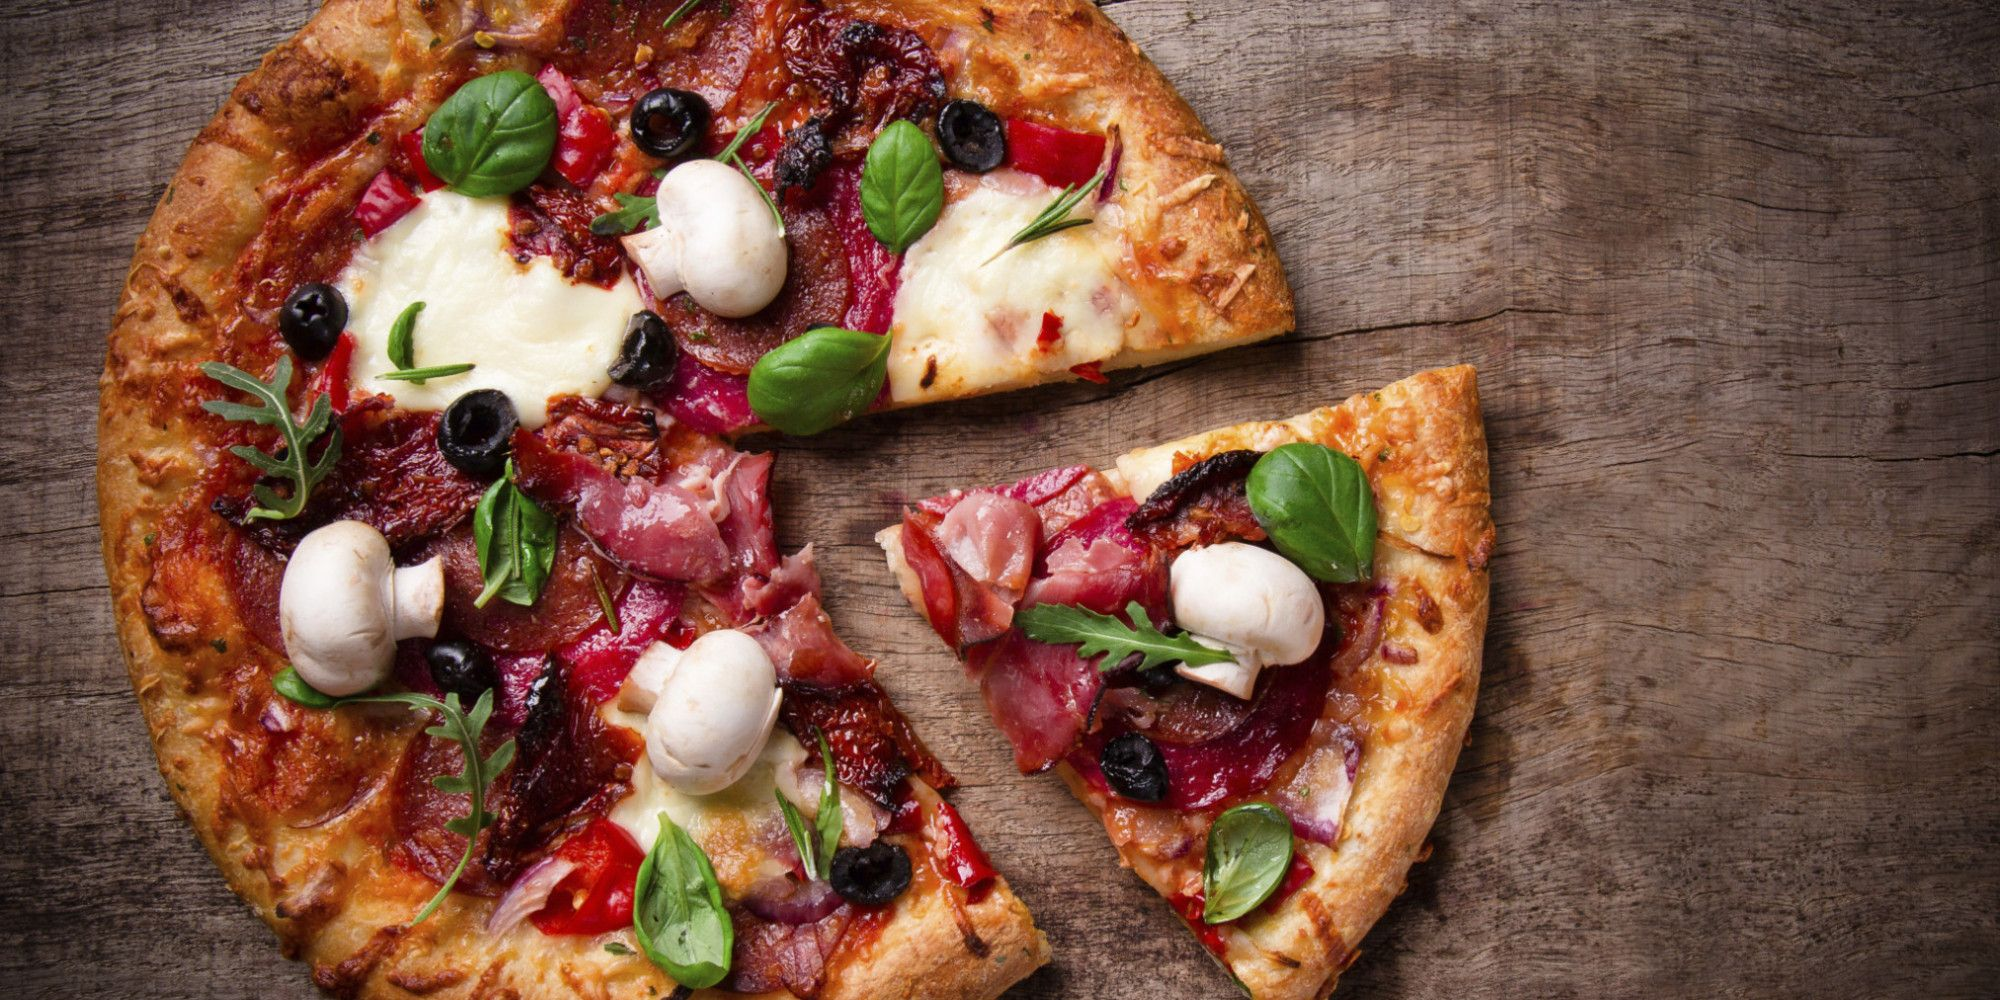 This App Tells You What Kind Of Wine To Drink With Your Pizza Pizza Recipes Easy Food Making Homemade Pizza